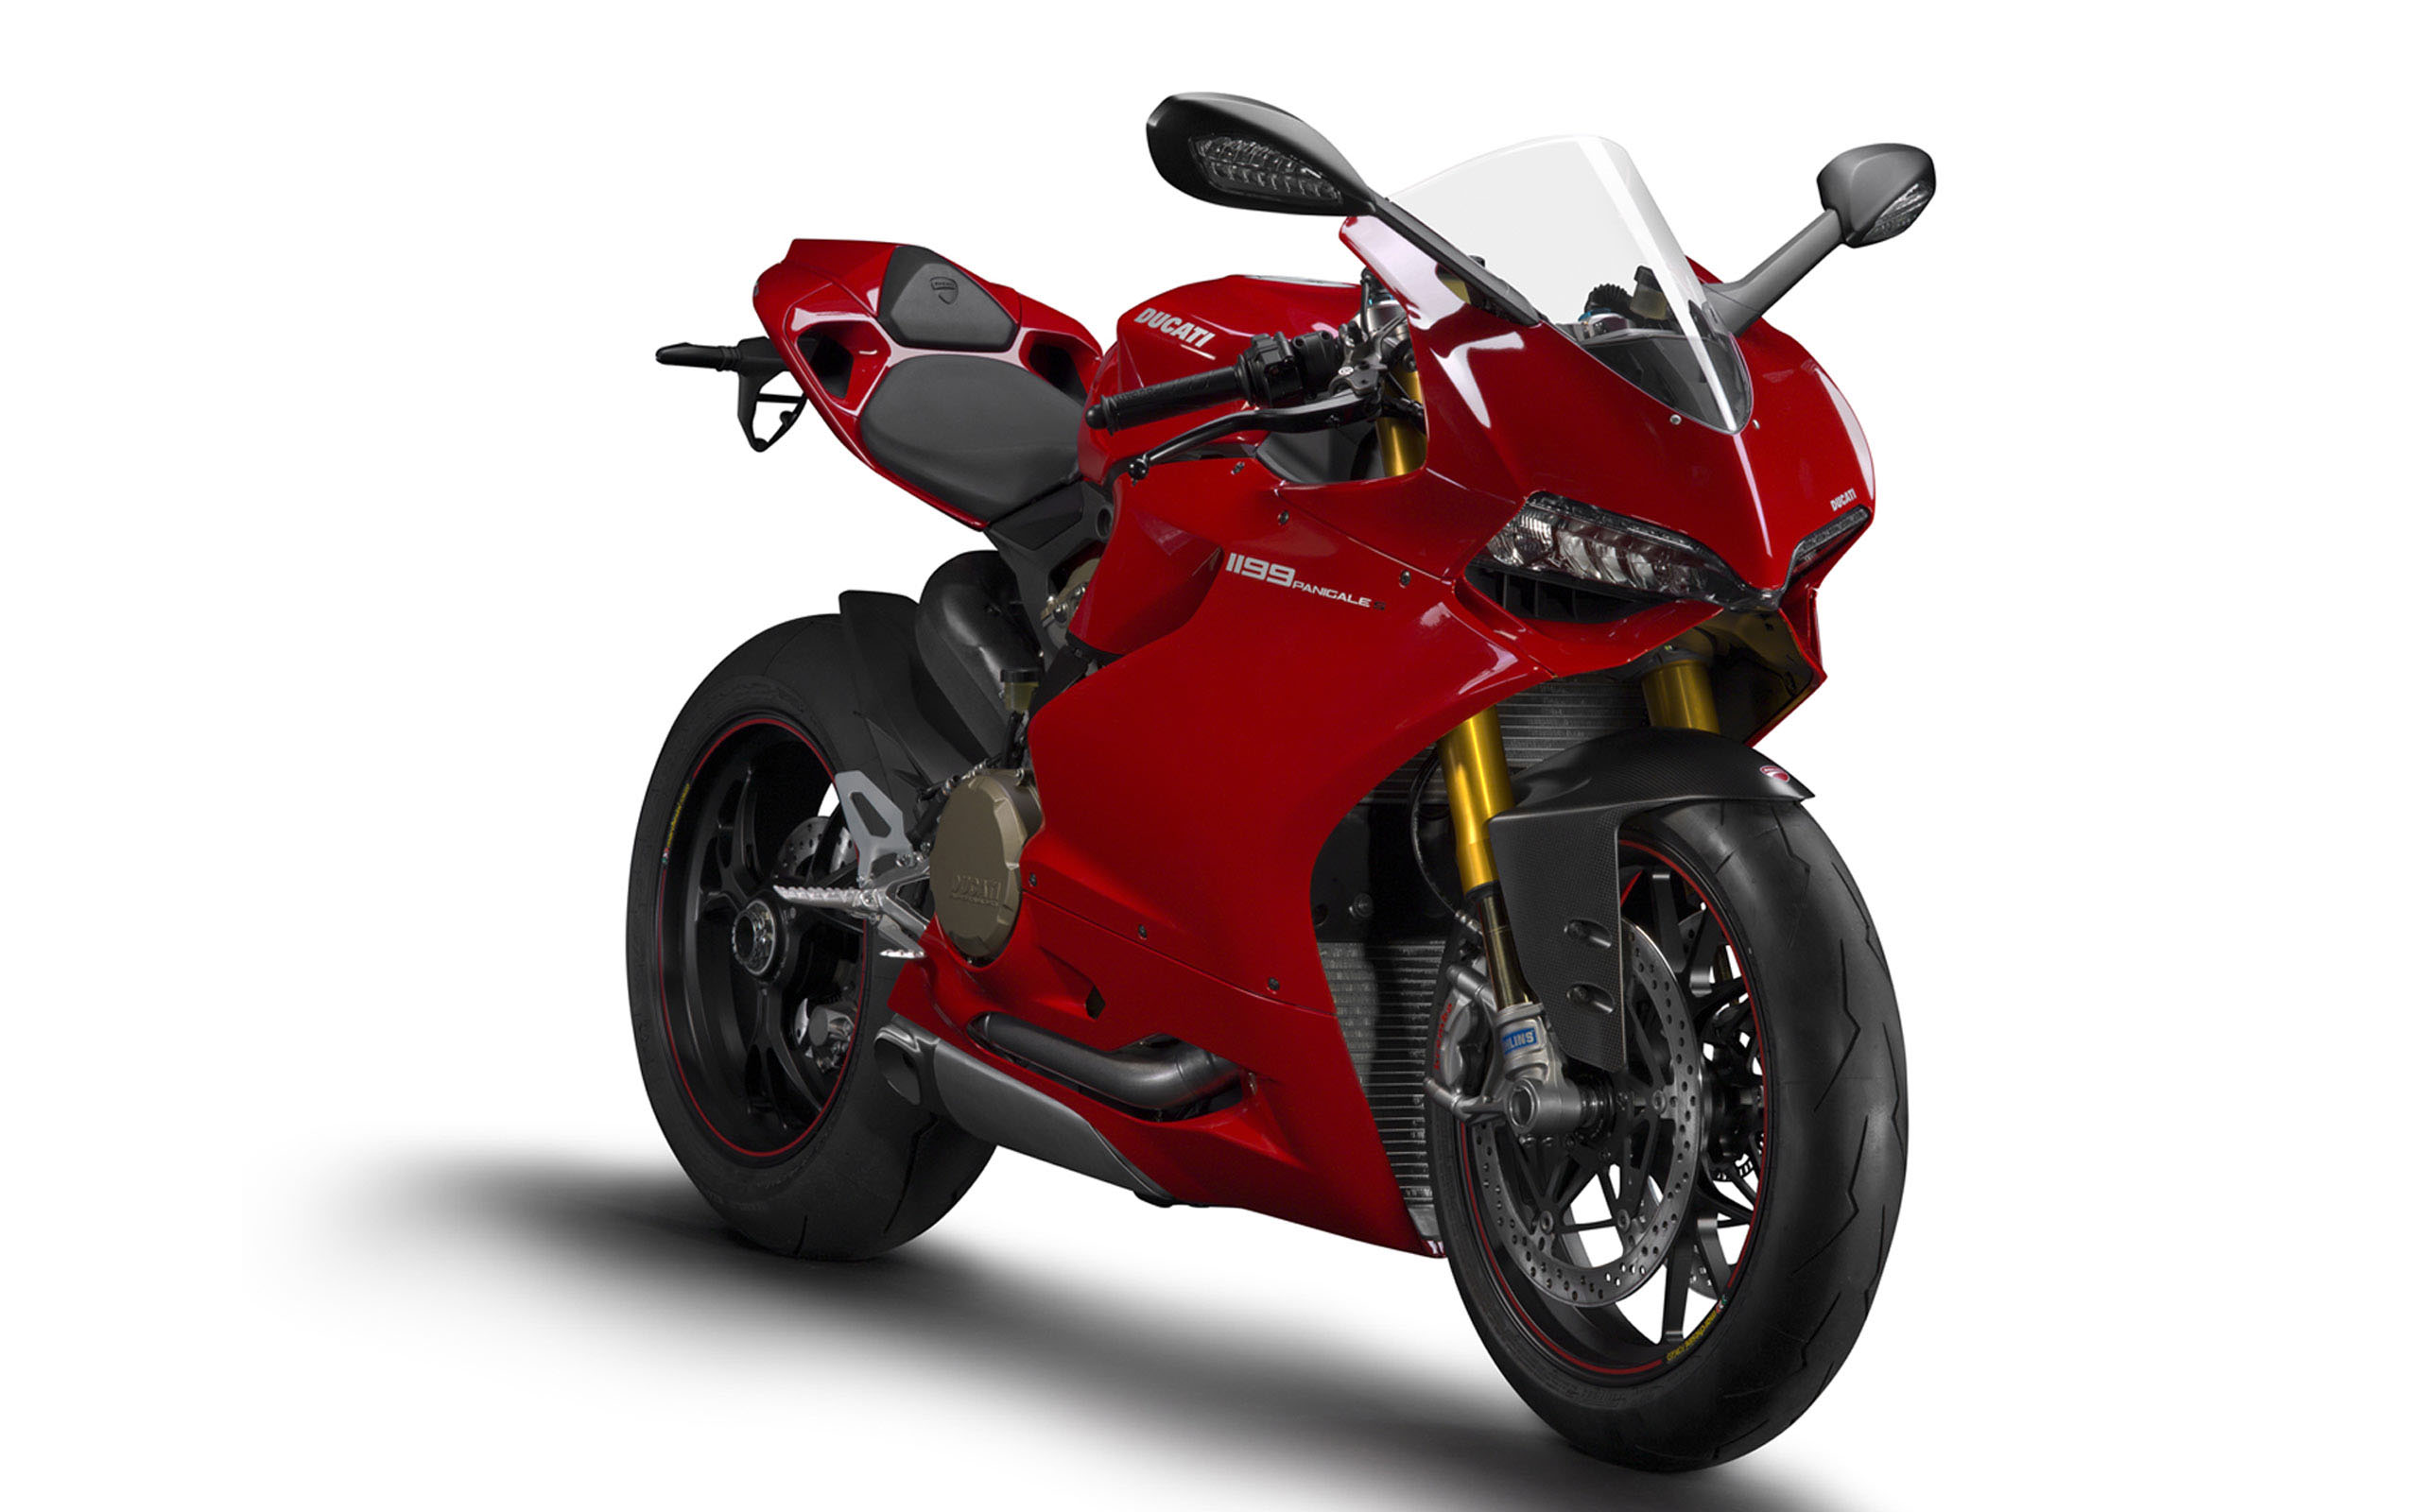 pc wallpaper Ducati 1199 Pangale S 2560x1600